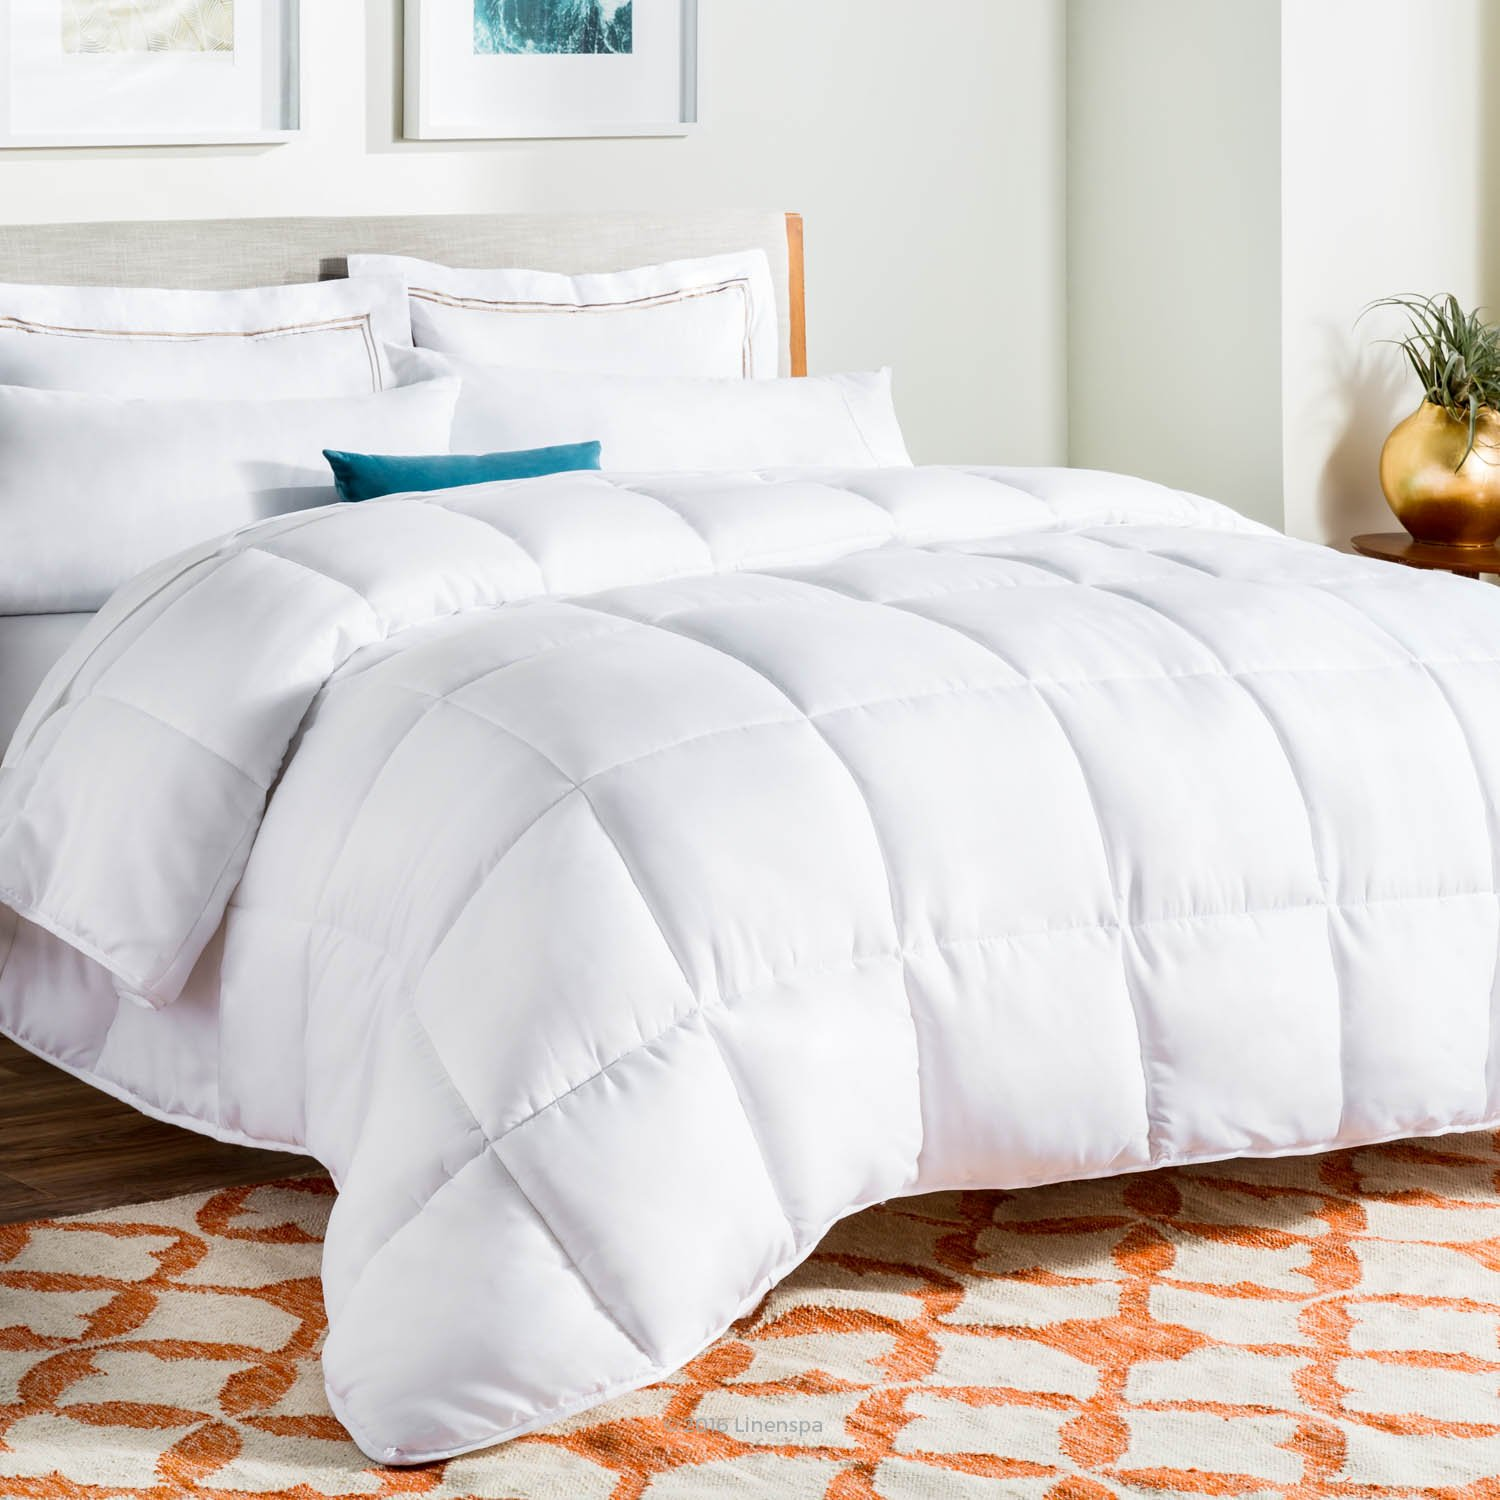 LINENSPA All-Season White Down Alternative Quilted Comforter - Corner Duvet Tabs - Hypoallergenic - Plush Microfiber Fill - Machine Washable - Duvet Insert or Stand-Alone Comforter - Full CVB Inc LS70FFMICO